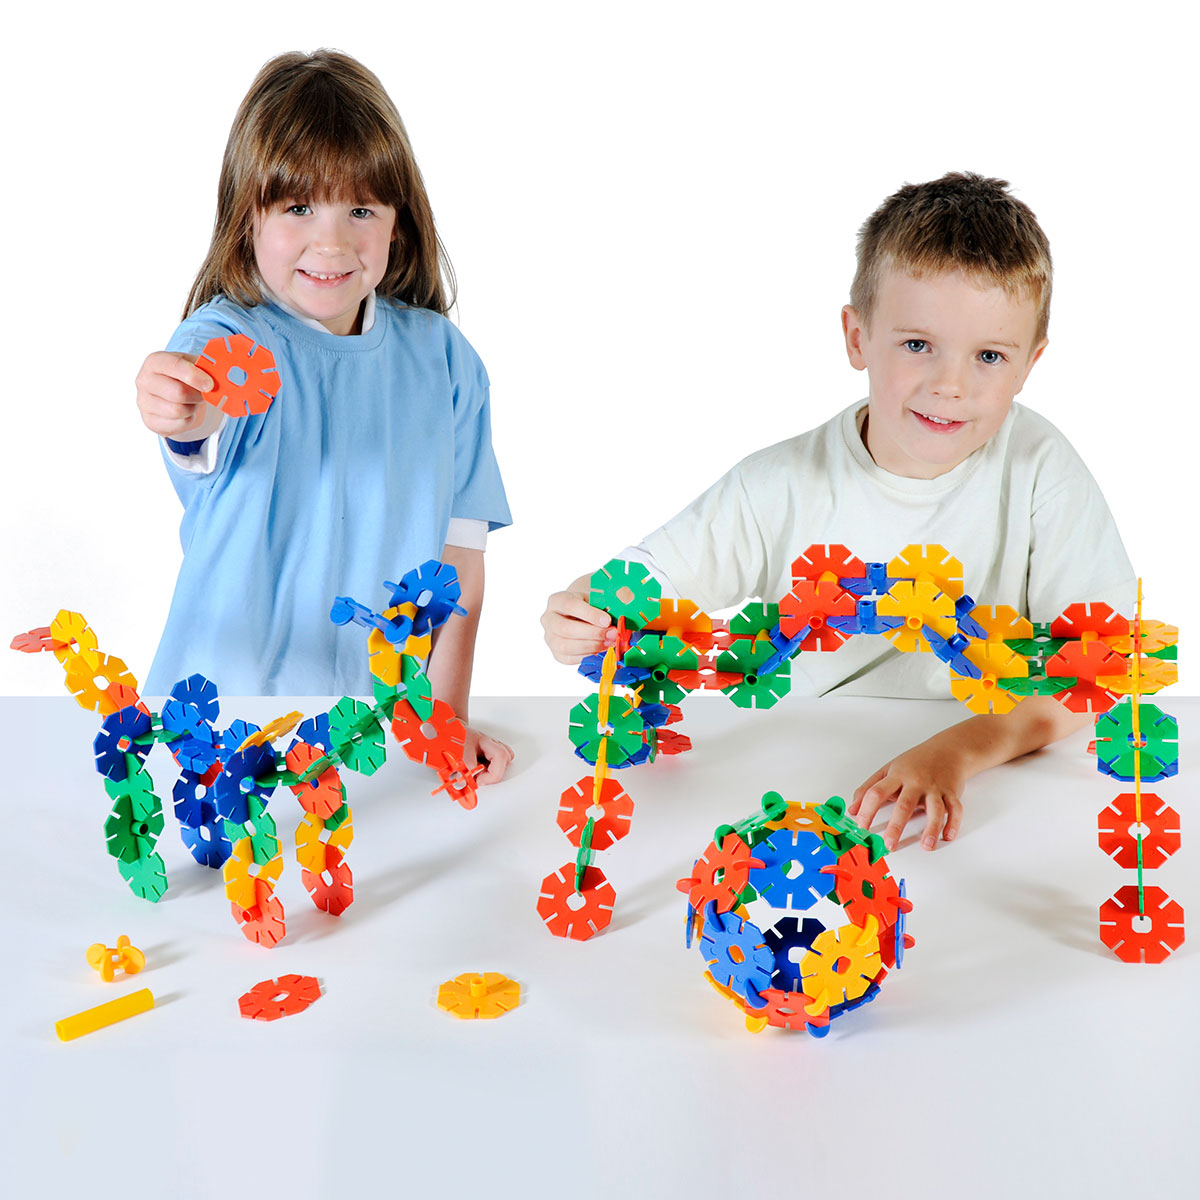 Octoplay Play Pack